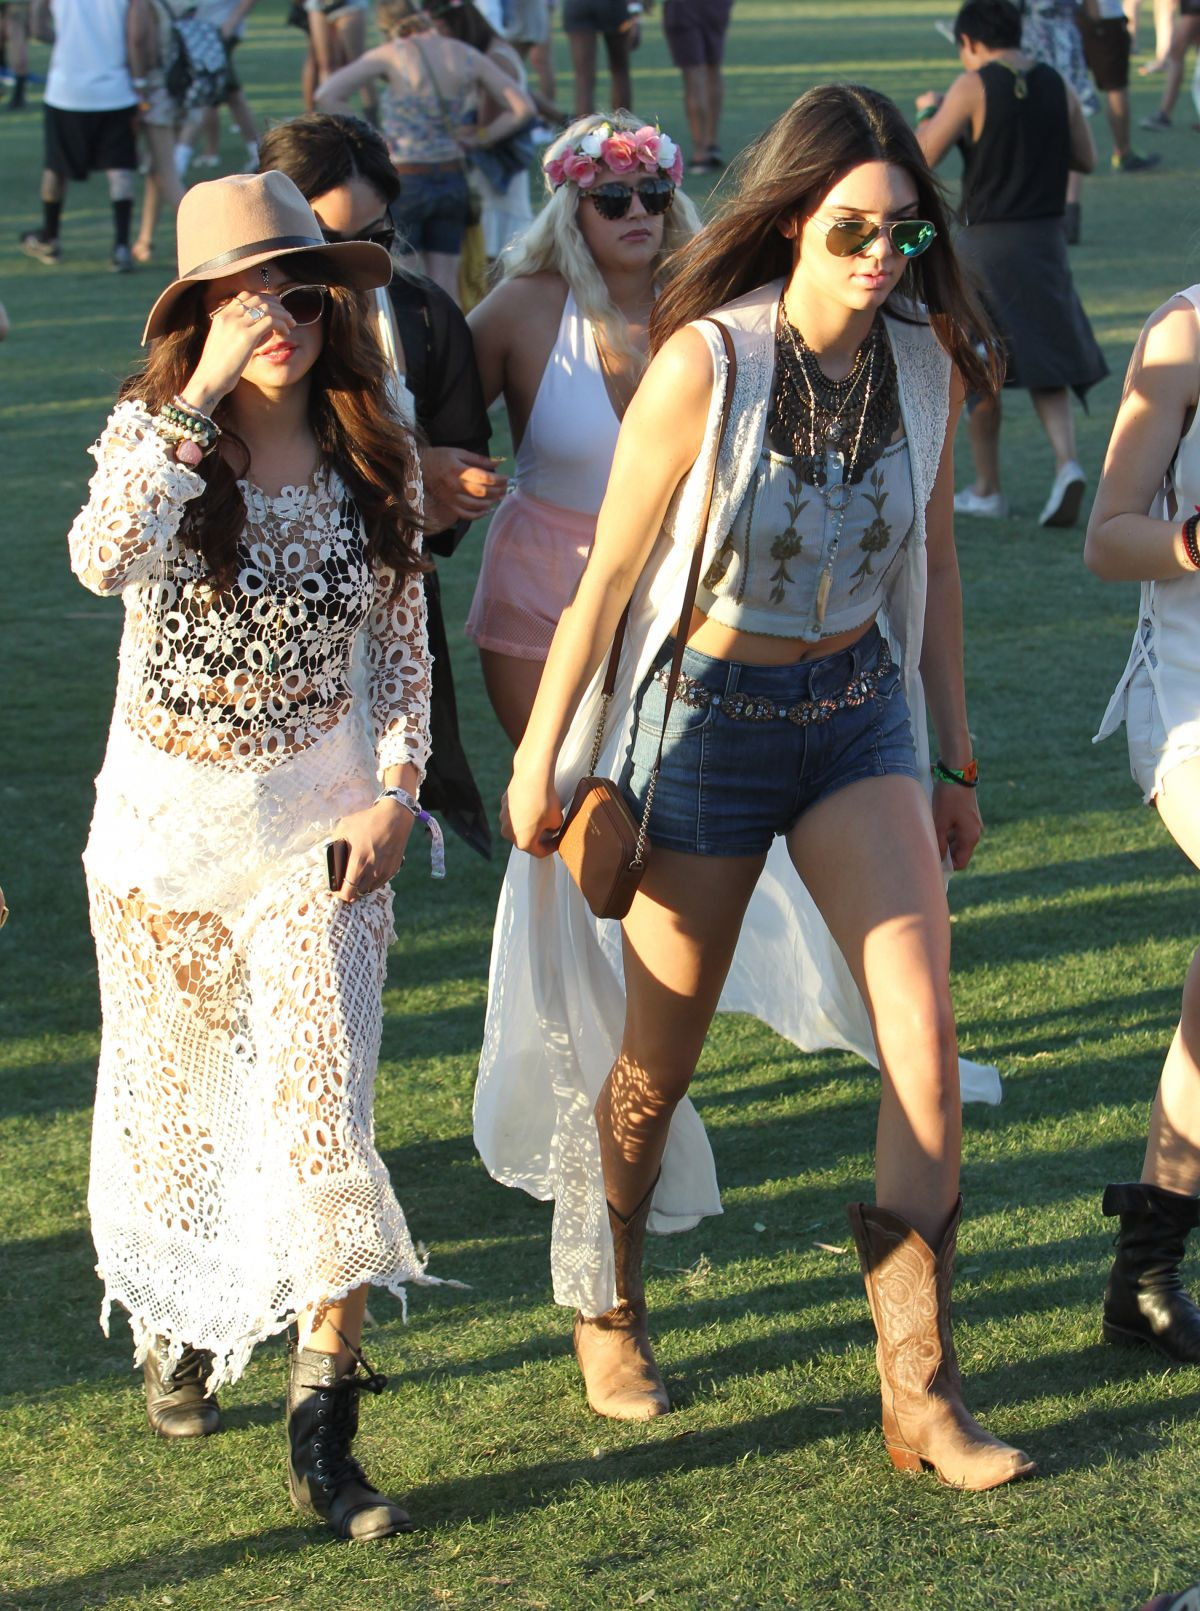 SELENA GOMEZ and Friends Out and About at Coachella